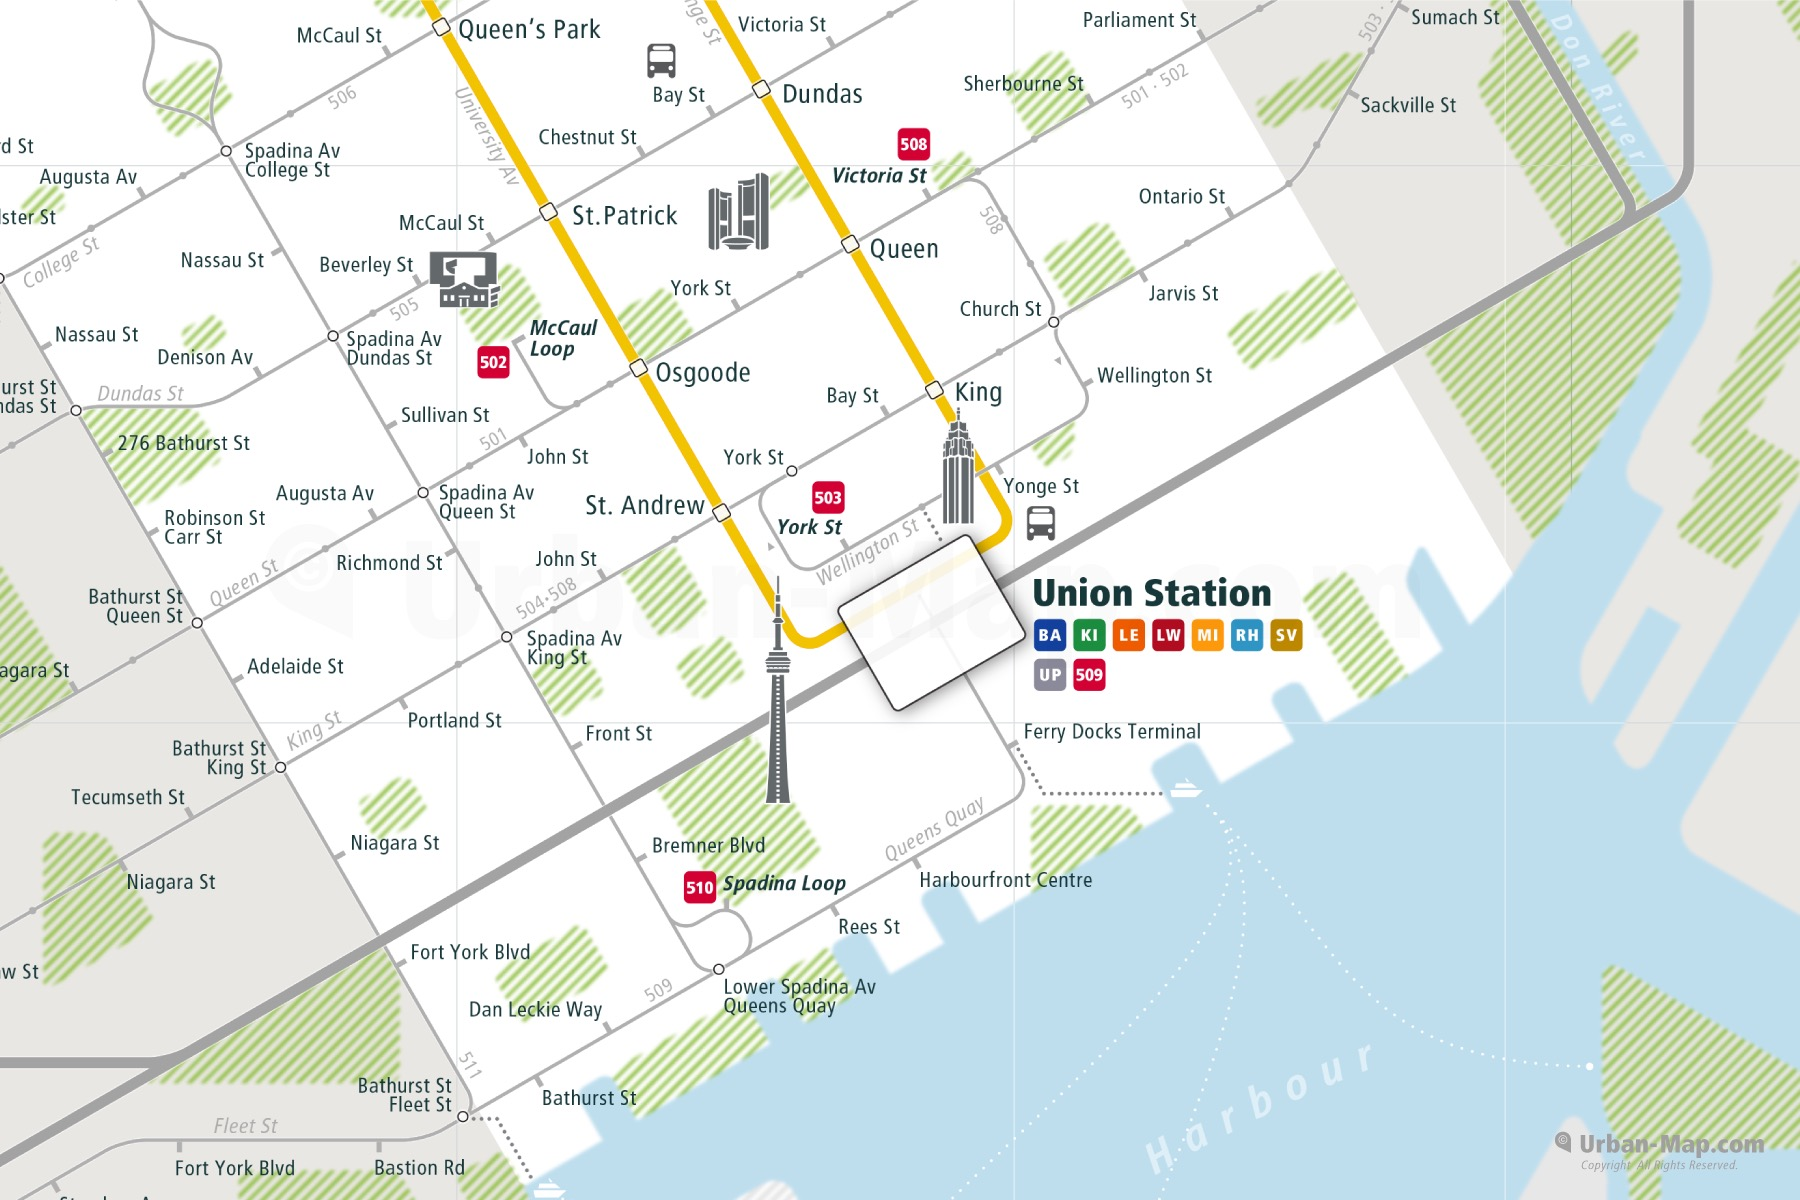 Toronto City Rail Map shows the train and public transportation routes of Metro, Tram - Close-Up